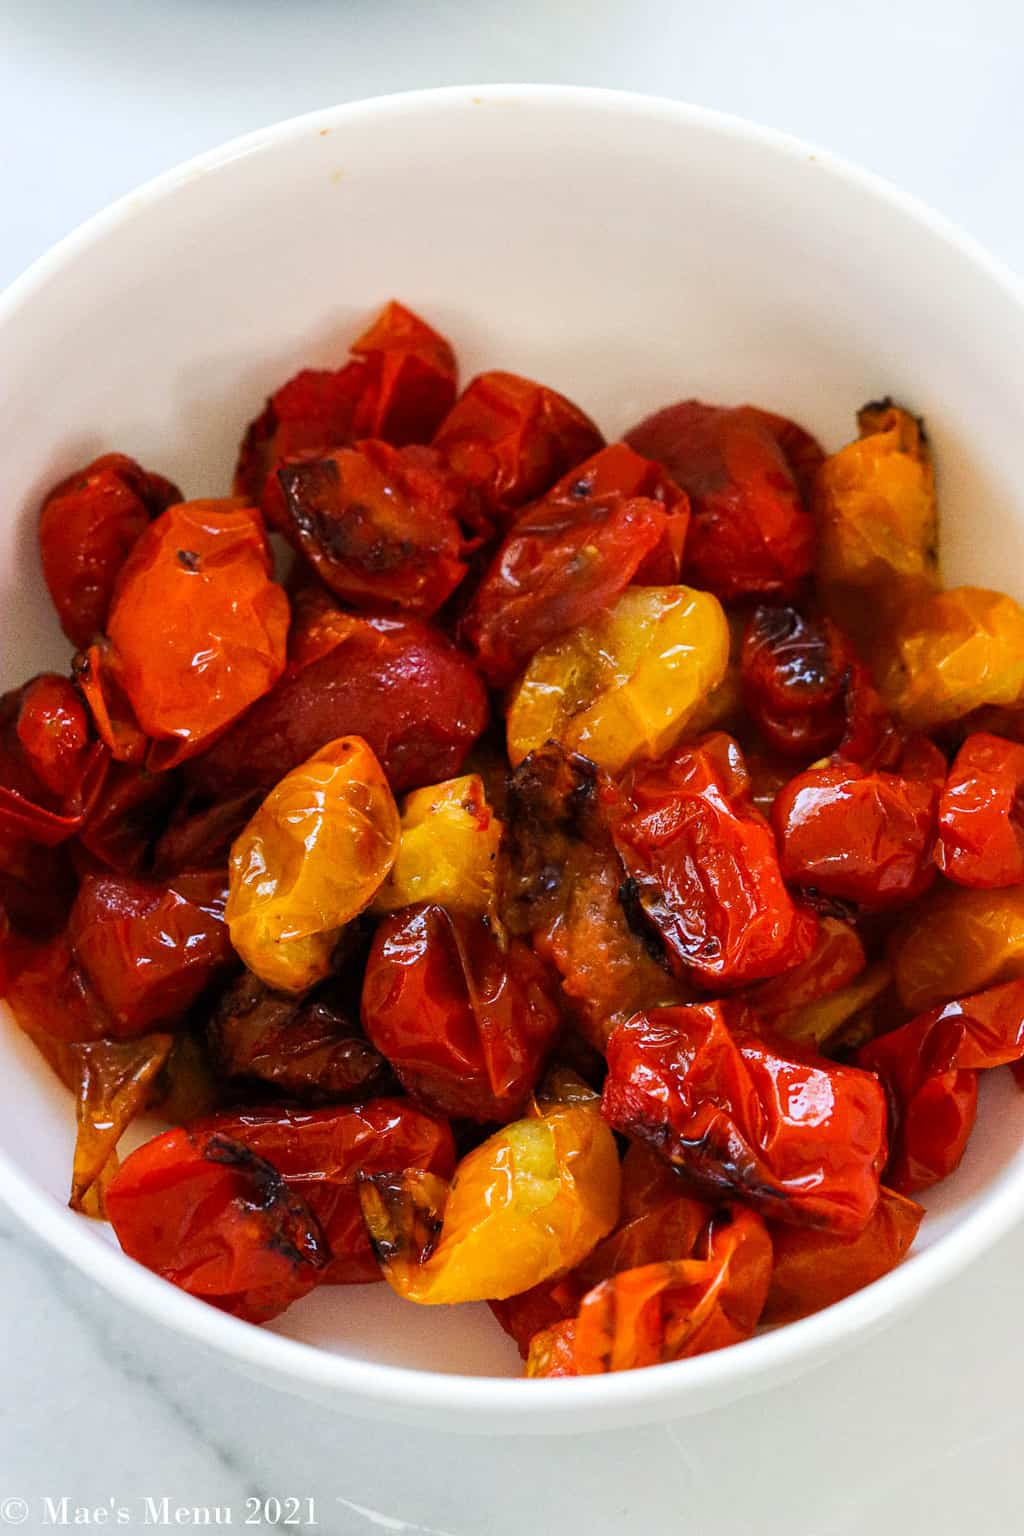 An up close shot of a bowl of roast cherry tomatoes